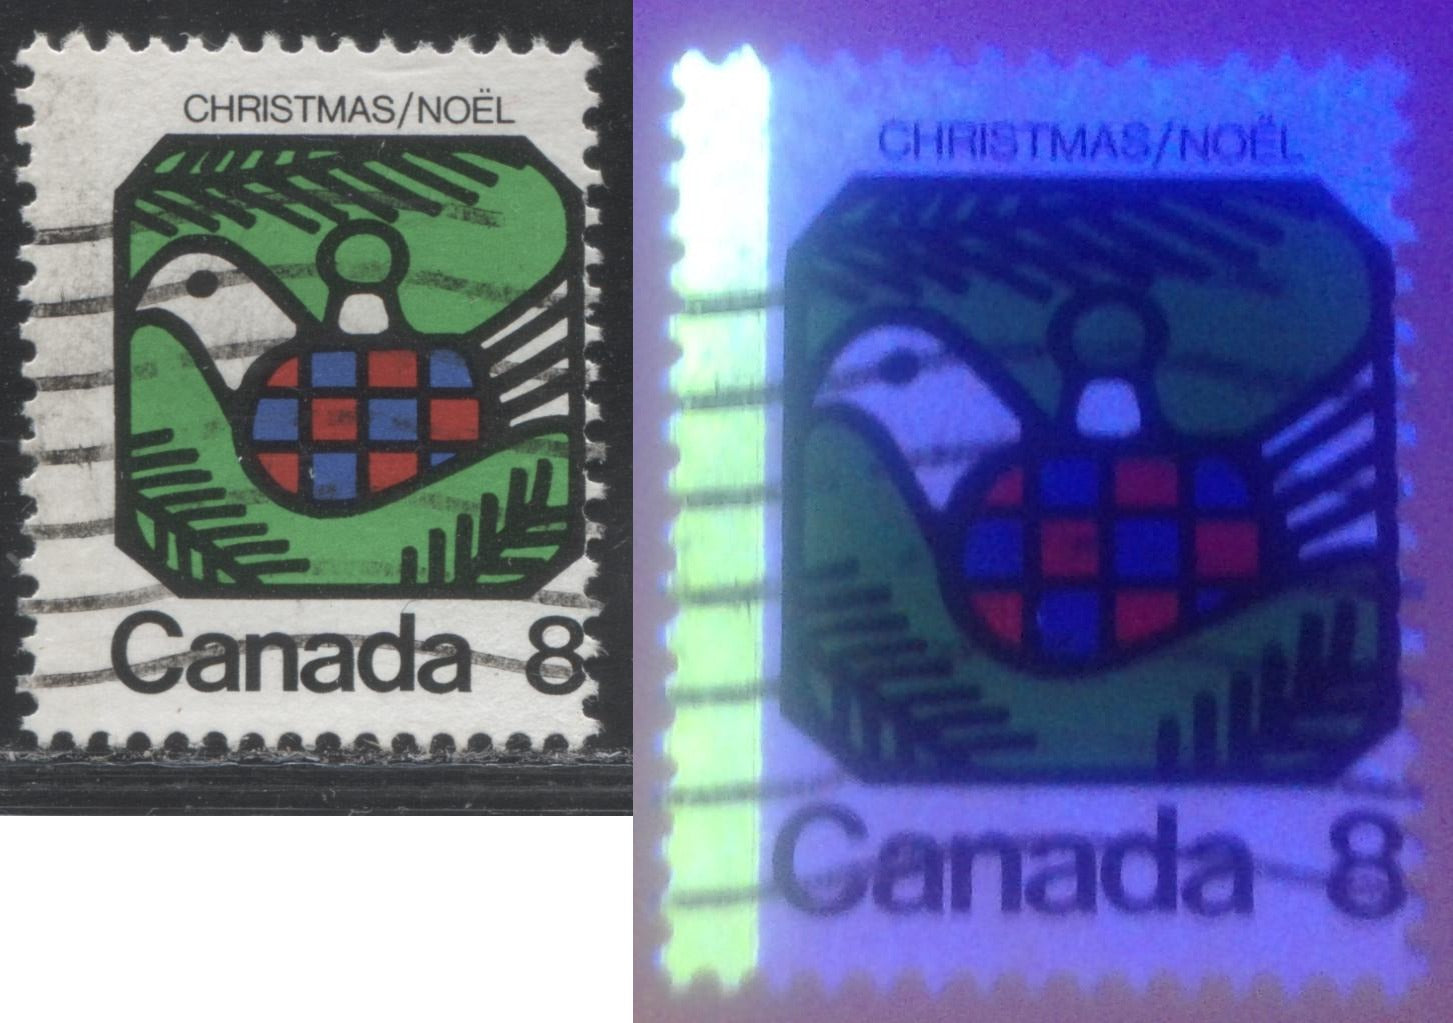 Canada #626 G1aL 8c Multicoloured, Dove, 1973 Christmas Issue, a Fine Used Single, on MF/HF Paper Showing 1-Bar Tag Error